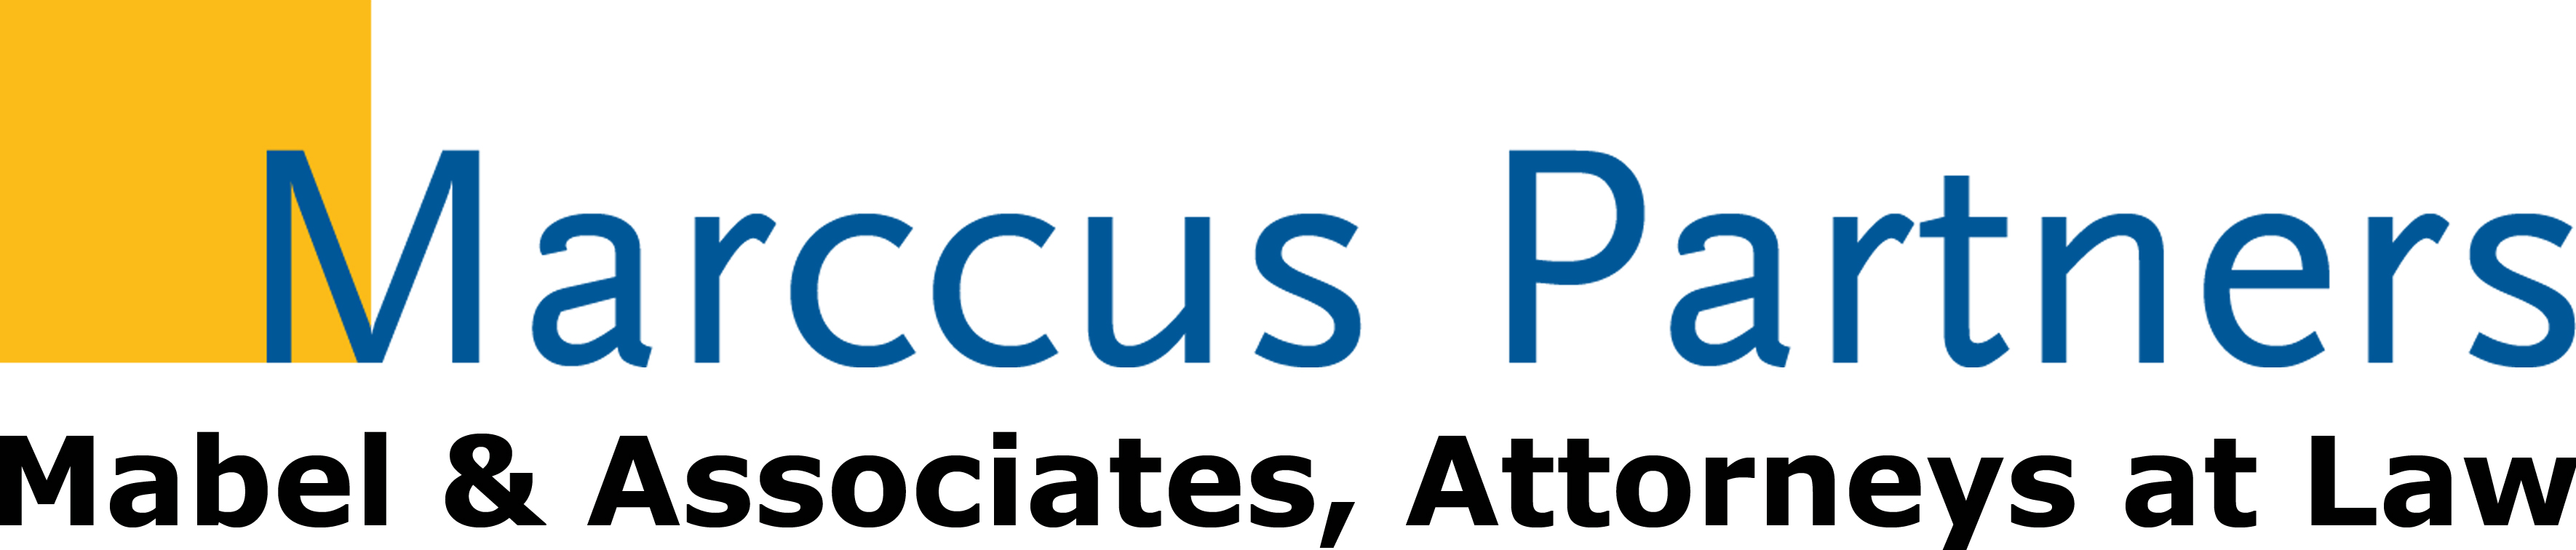 Marccus Partners Mabel & Associates, Attorneys at Law